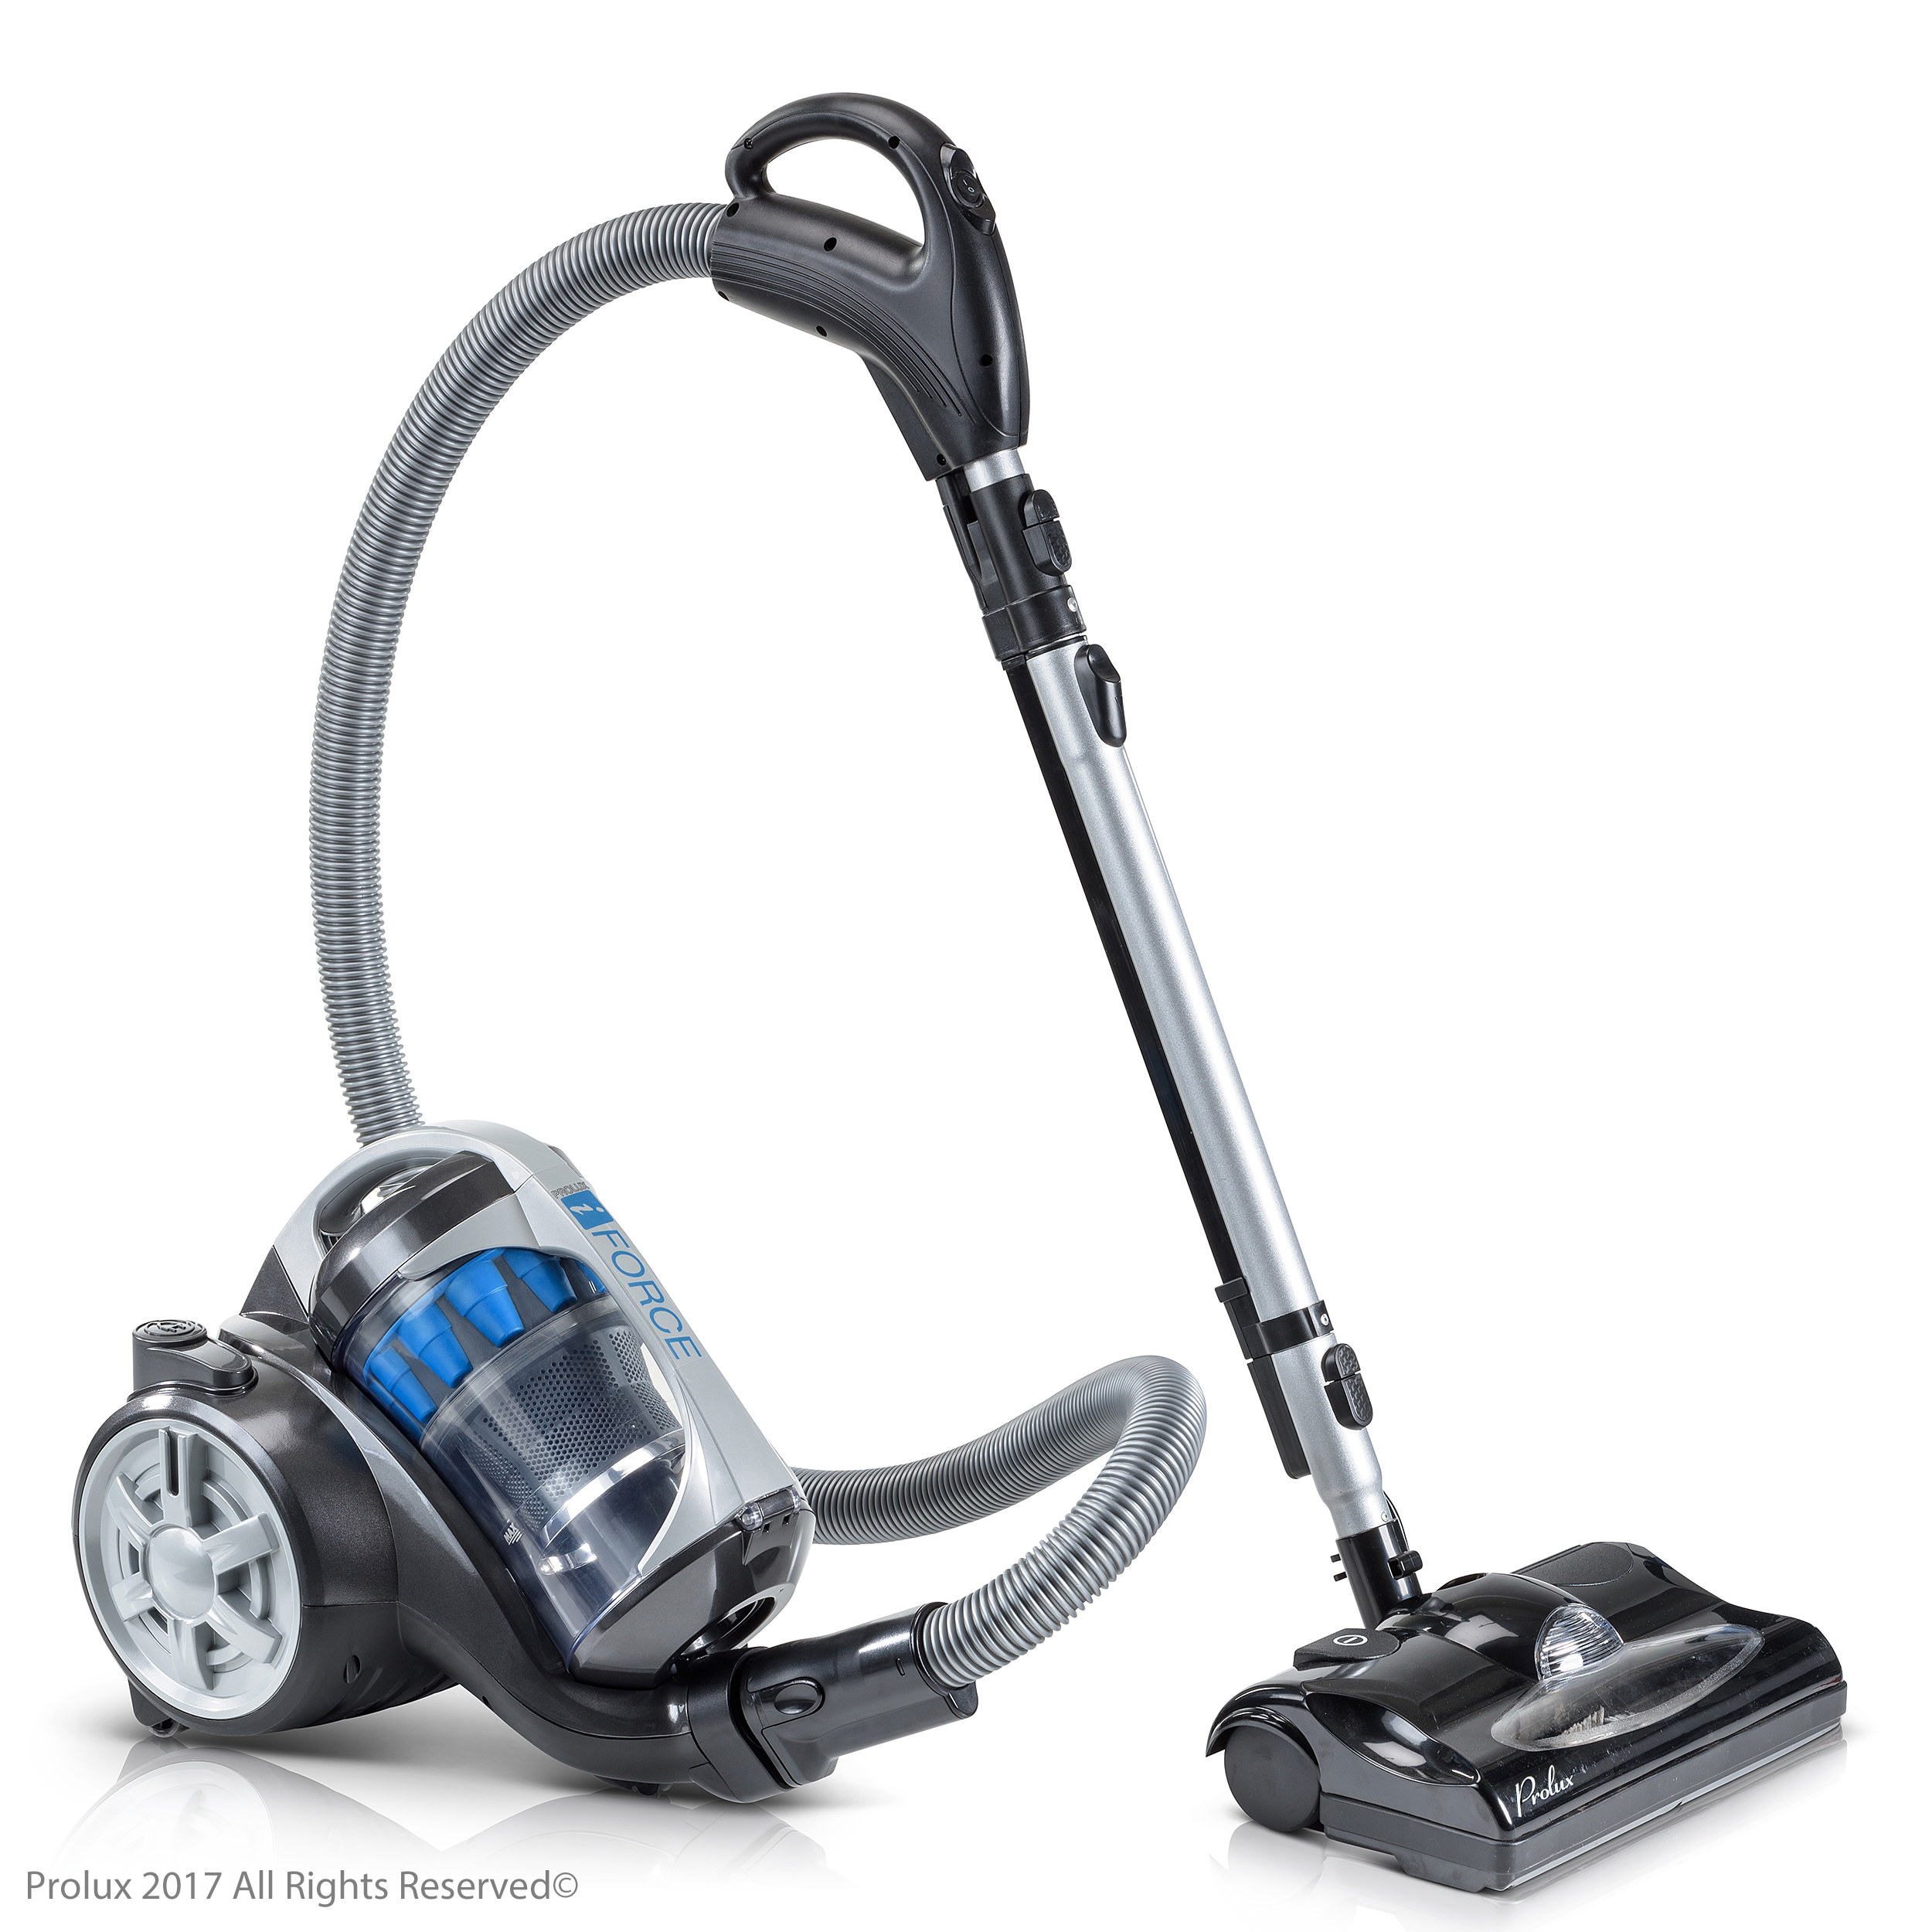 Prolux iFORCE Light Weight Bagless Canister Vacuum Cleaner Hepa Filtration & Power Nozzle